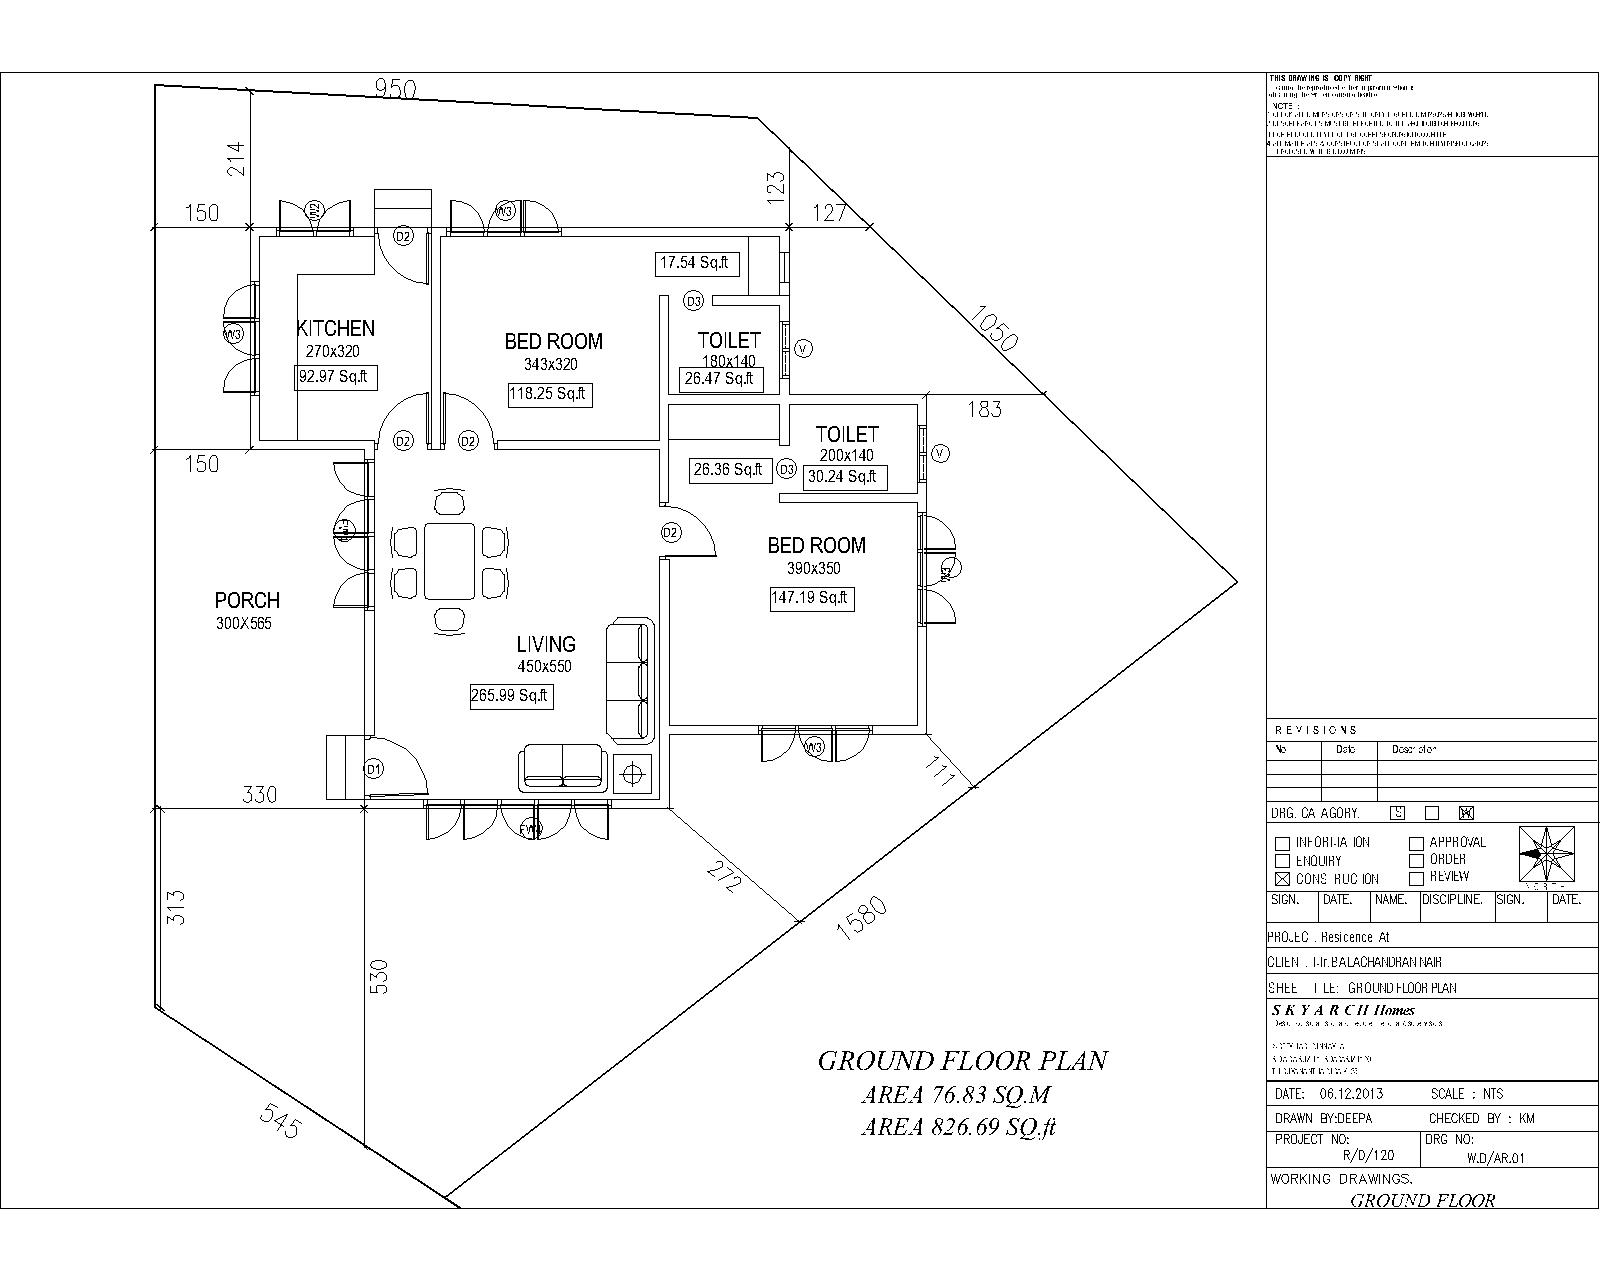 Kerala house construction tips 2 setting out plan and digging foundation for house construction ccuart Gallery